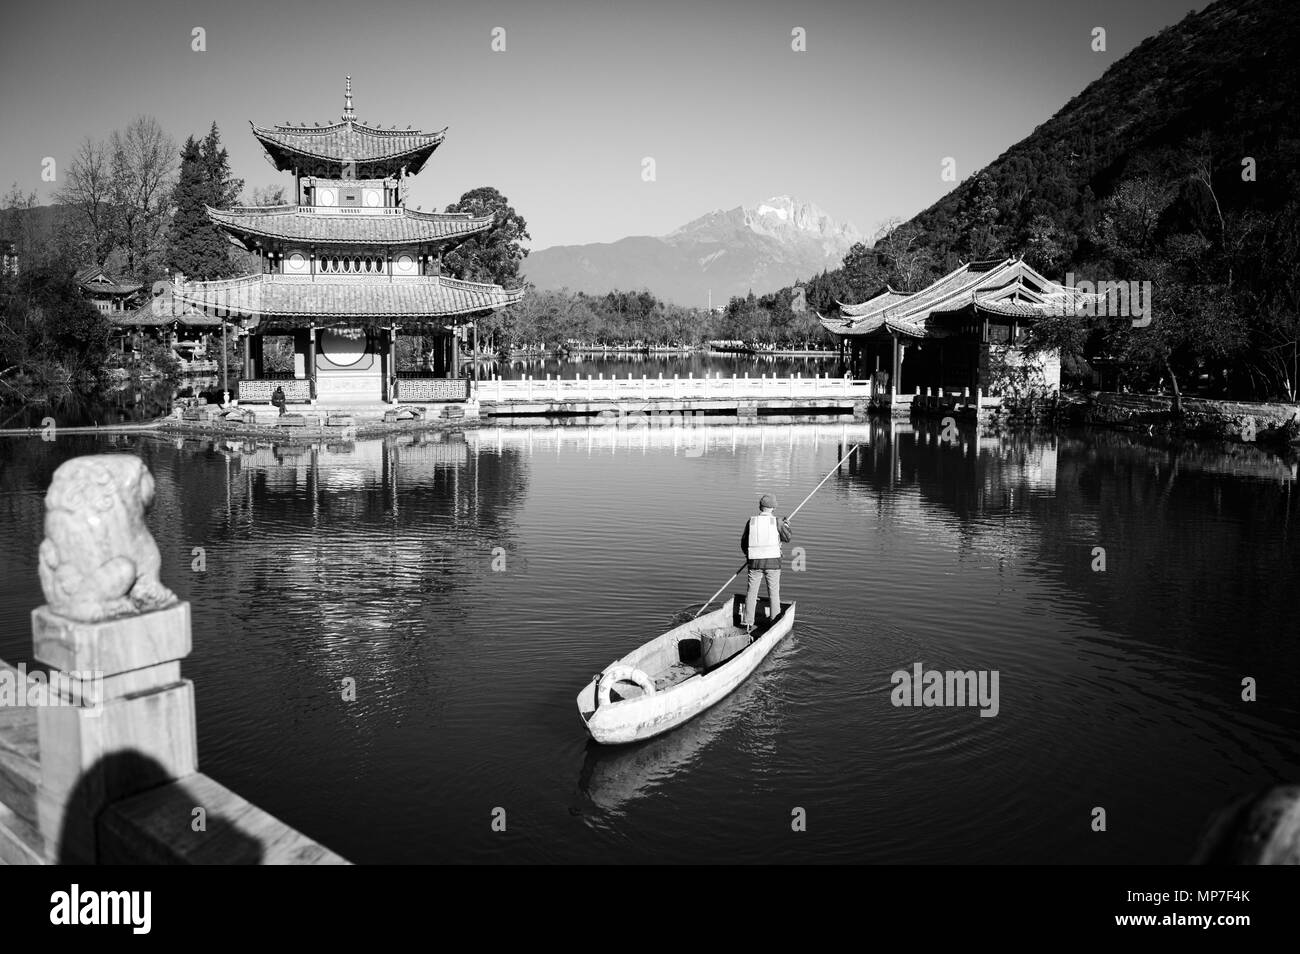 An old man on the boat in the Black Dragon Pool (Old town of Lijiang, Yunnan, China) - Stock Image